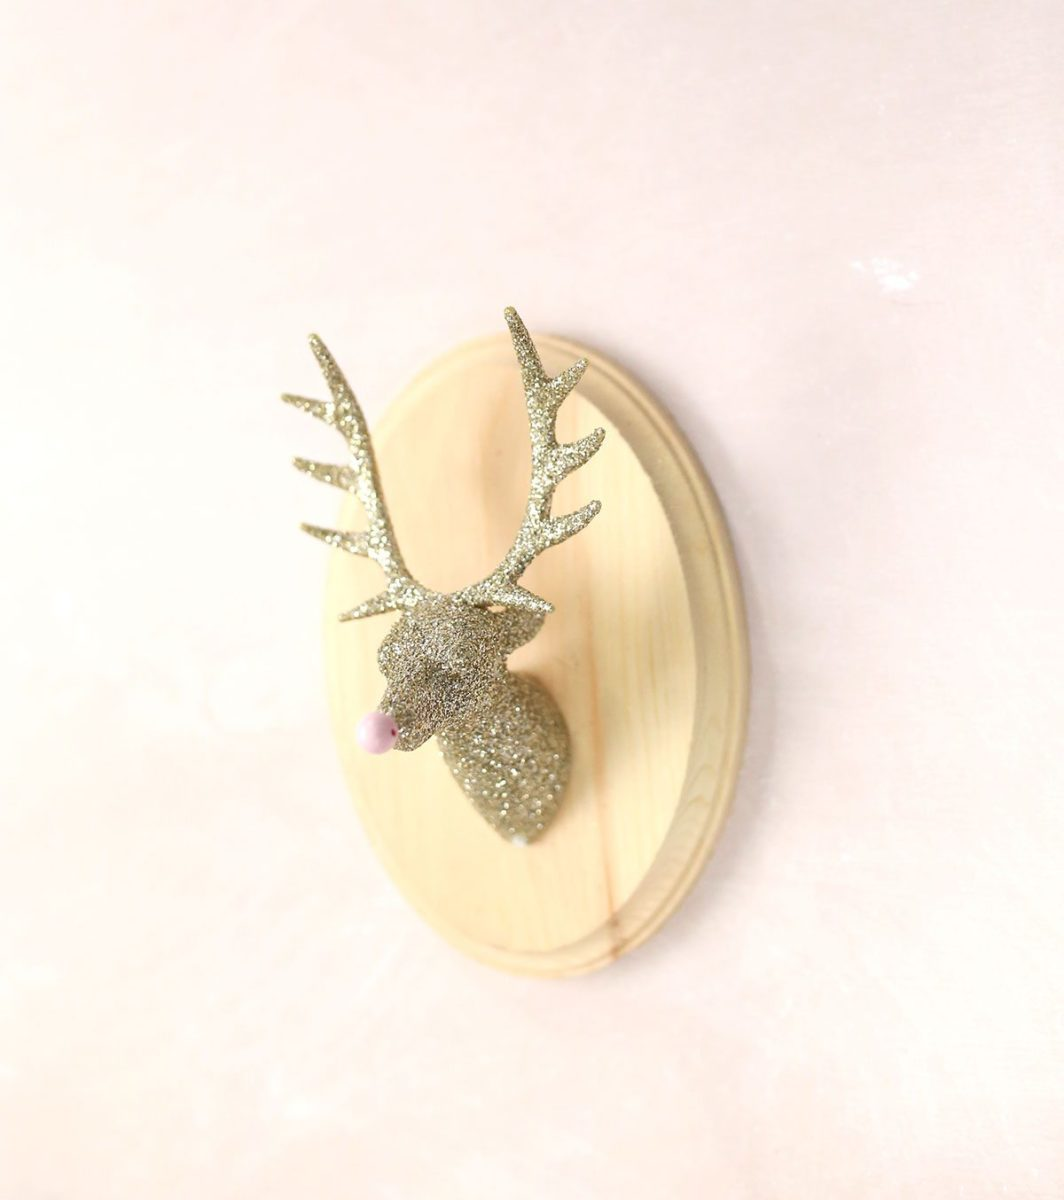 DIY Glitter Taxidermy Reindeer for Christmas